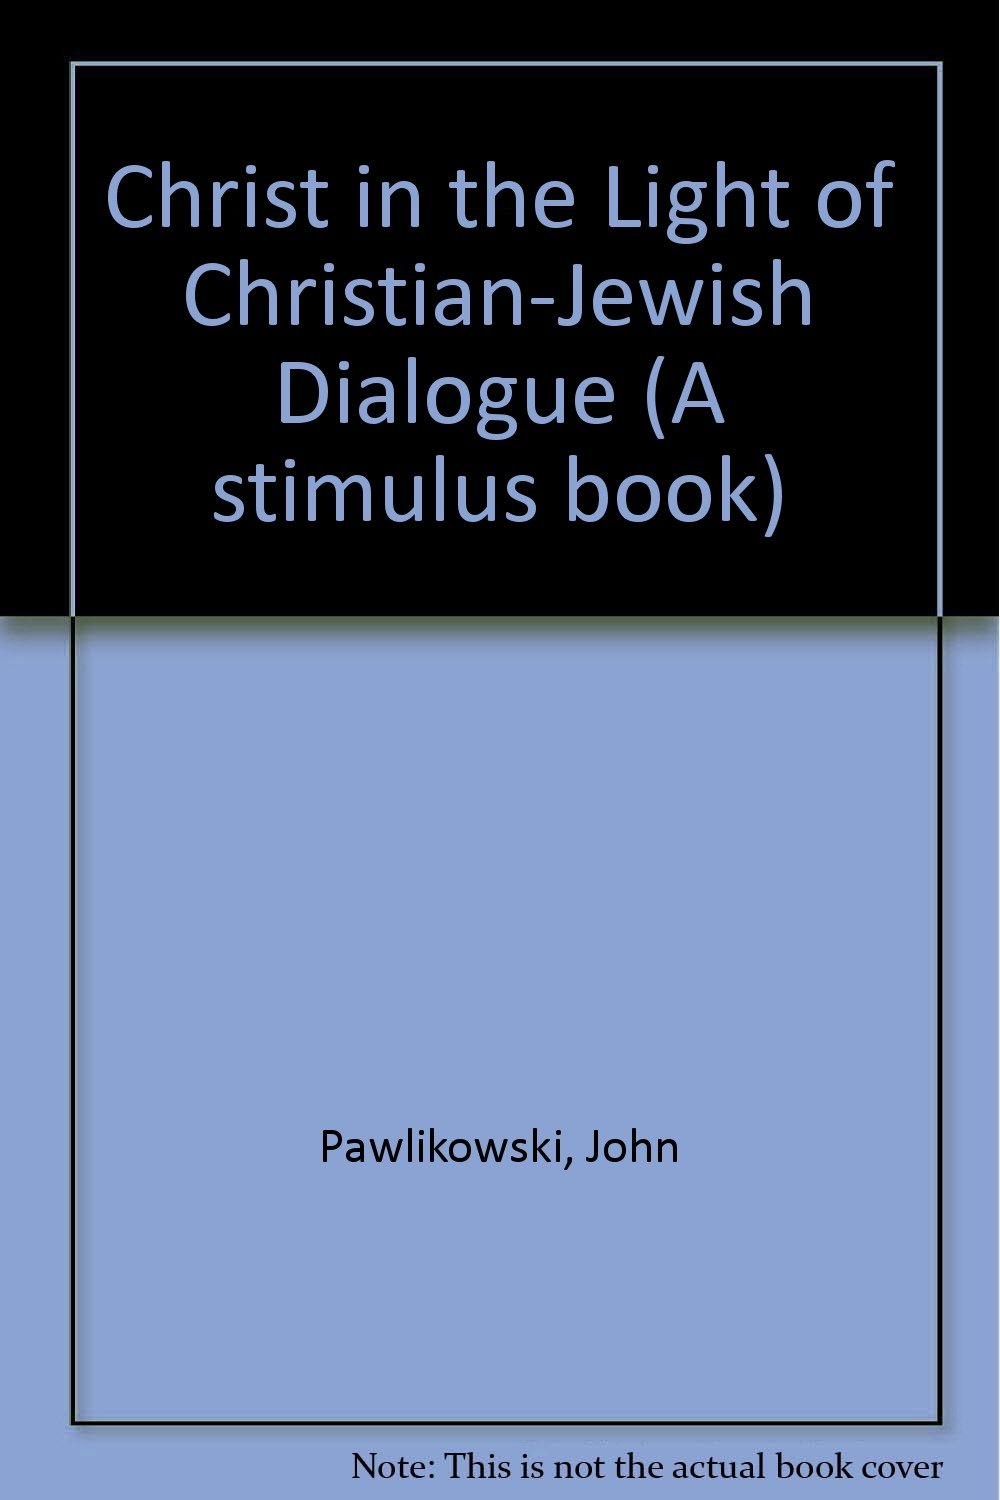 Christ in the Light of Christian-Jewish Dialogue (A stimulus book)